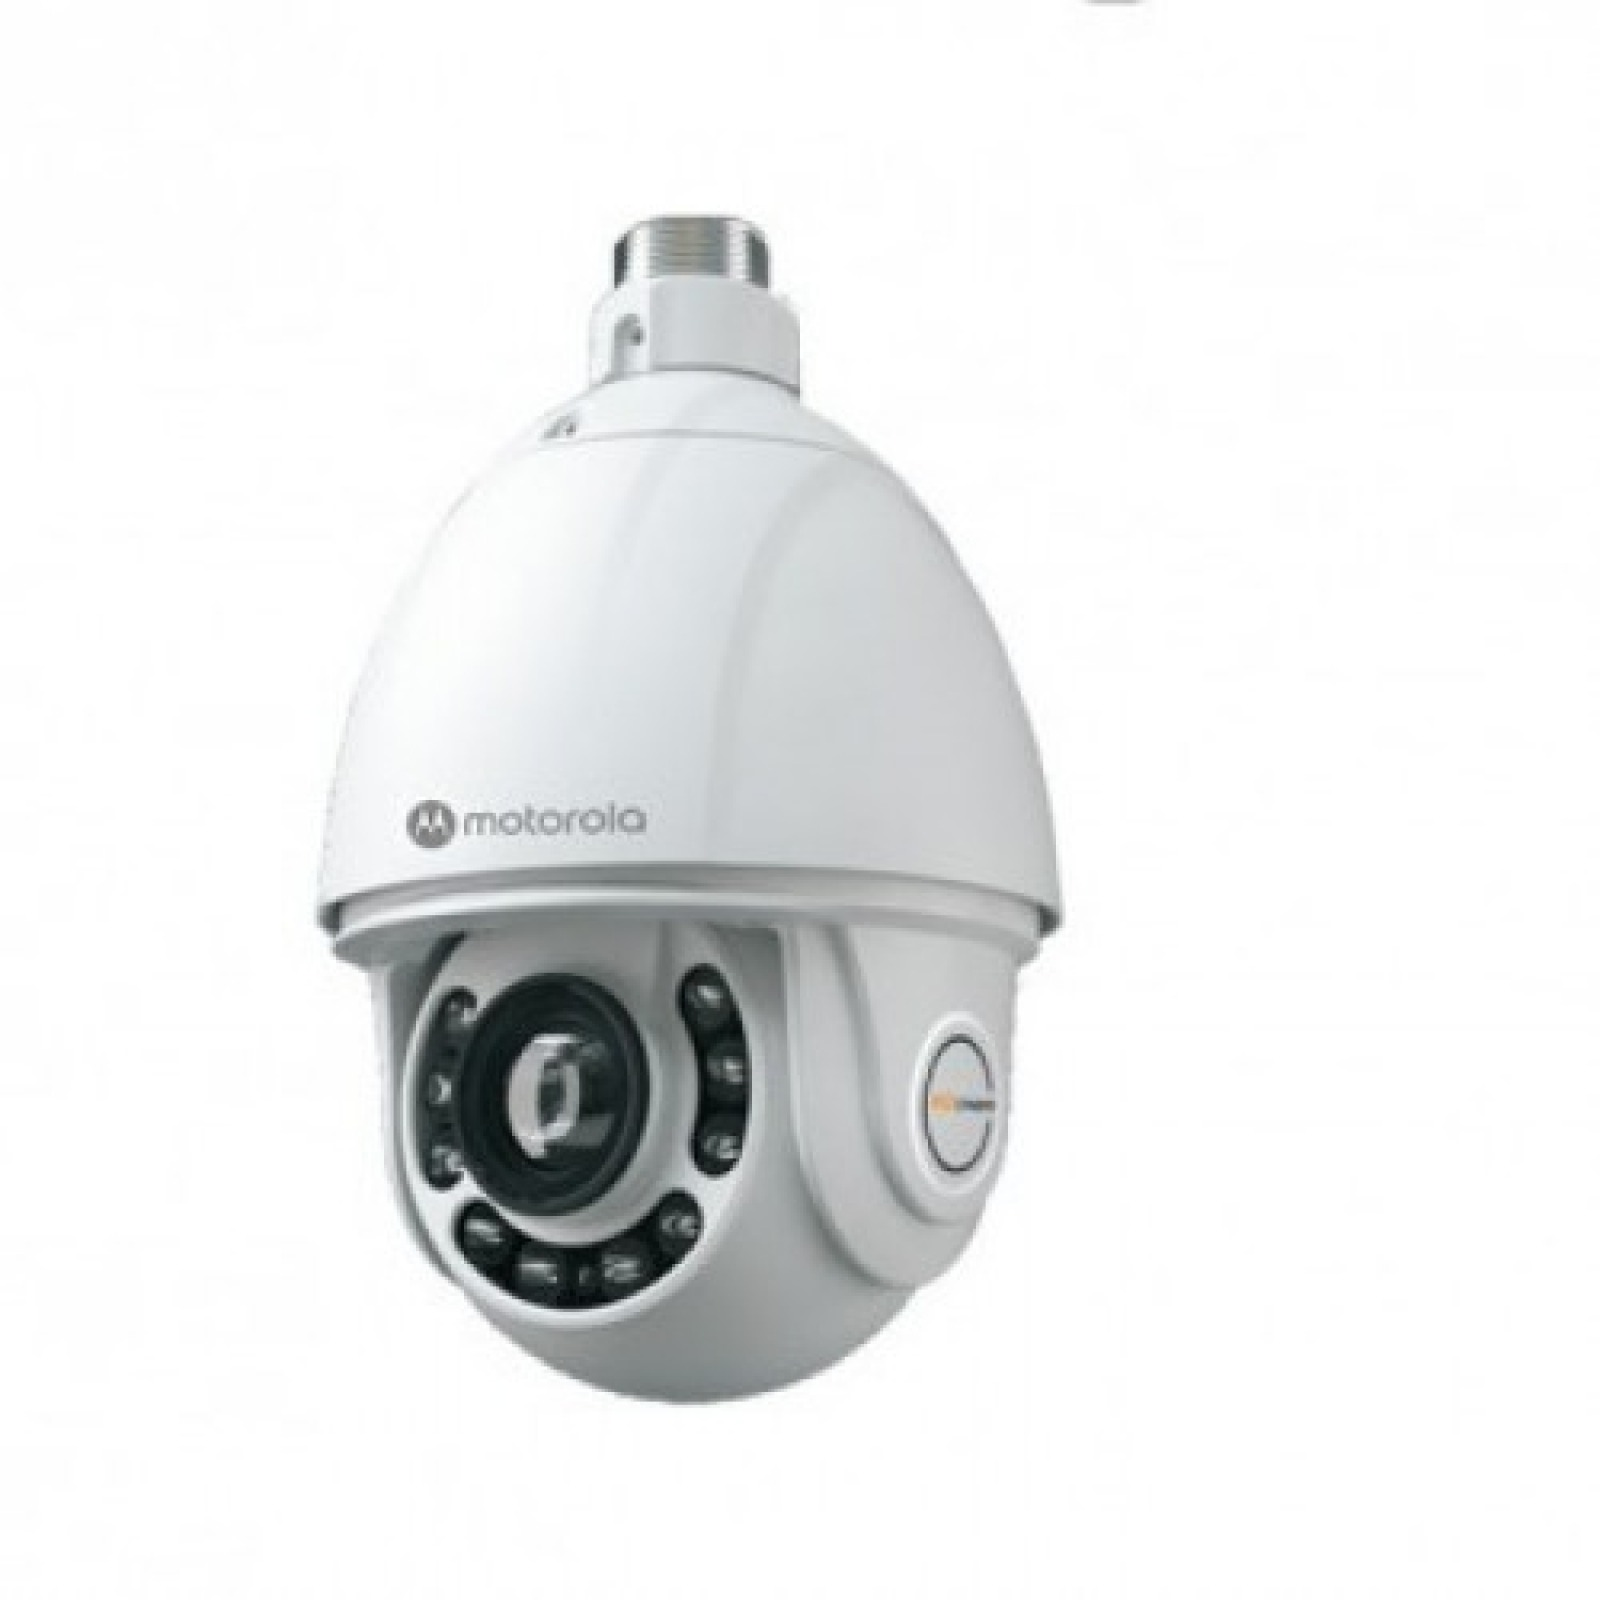 CAMERA SPEED DOME IP 30X 150M 3MP MTIPM153651PTZ